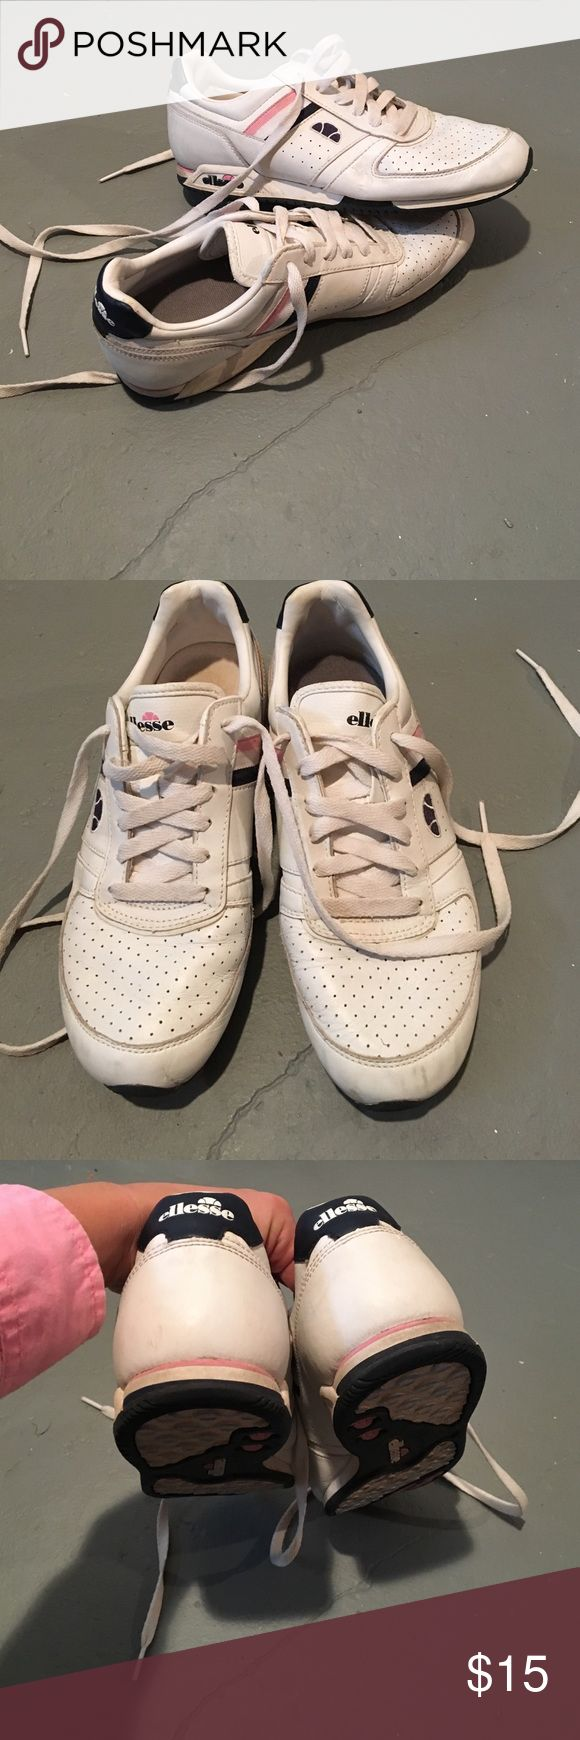 Ellesse white tennis cheer classic sneakers Amazing quality sneakers, non-marking soles with plenty of life left. Shows wear, see pictures. Navy pink and white grosgrain ribbon detail Ellesse Shoes Sneakers